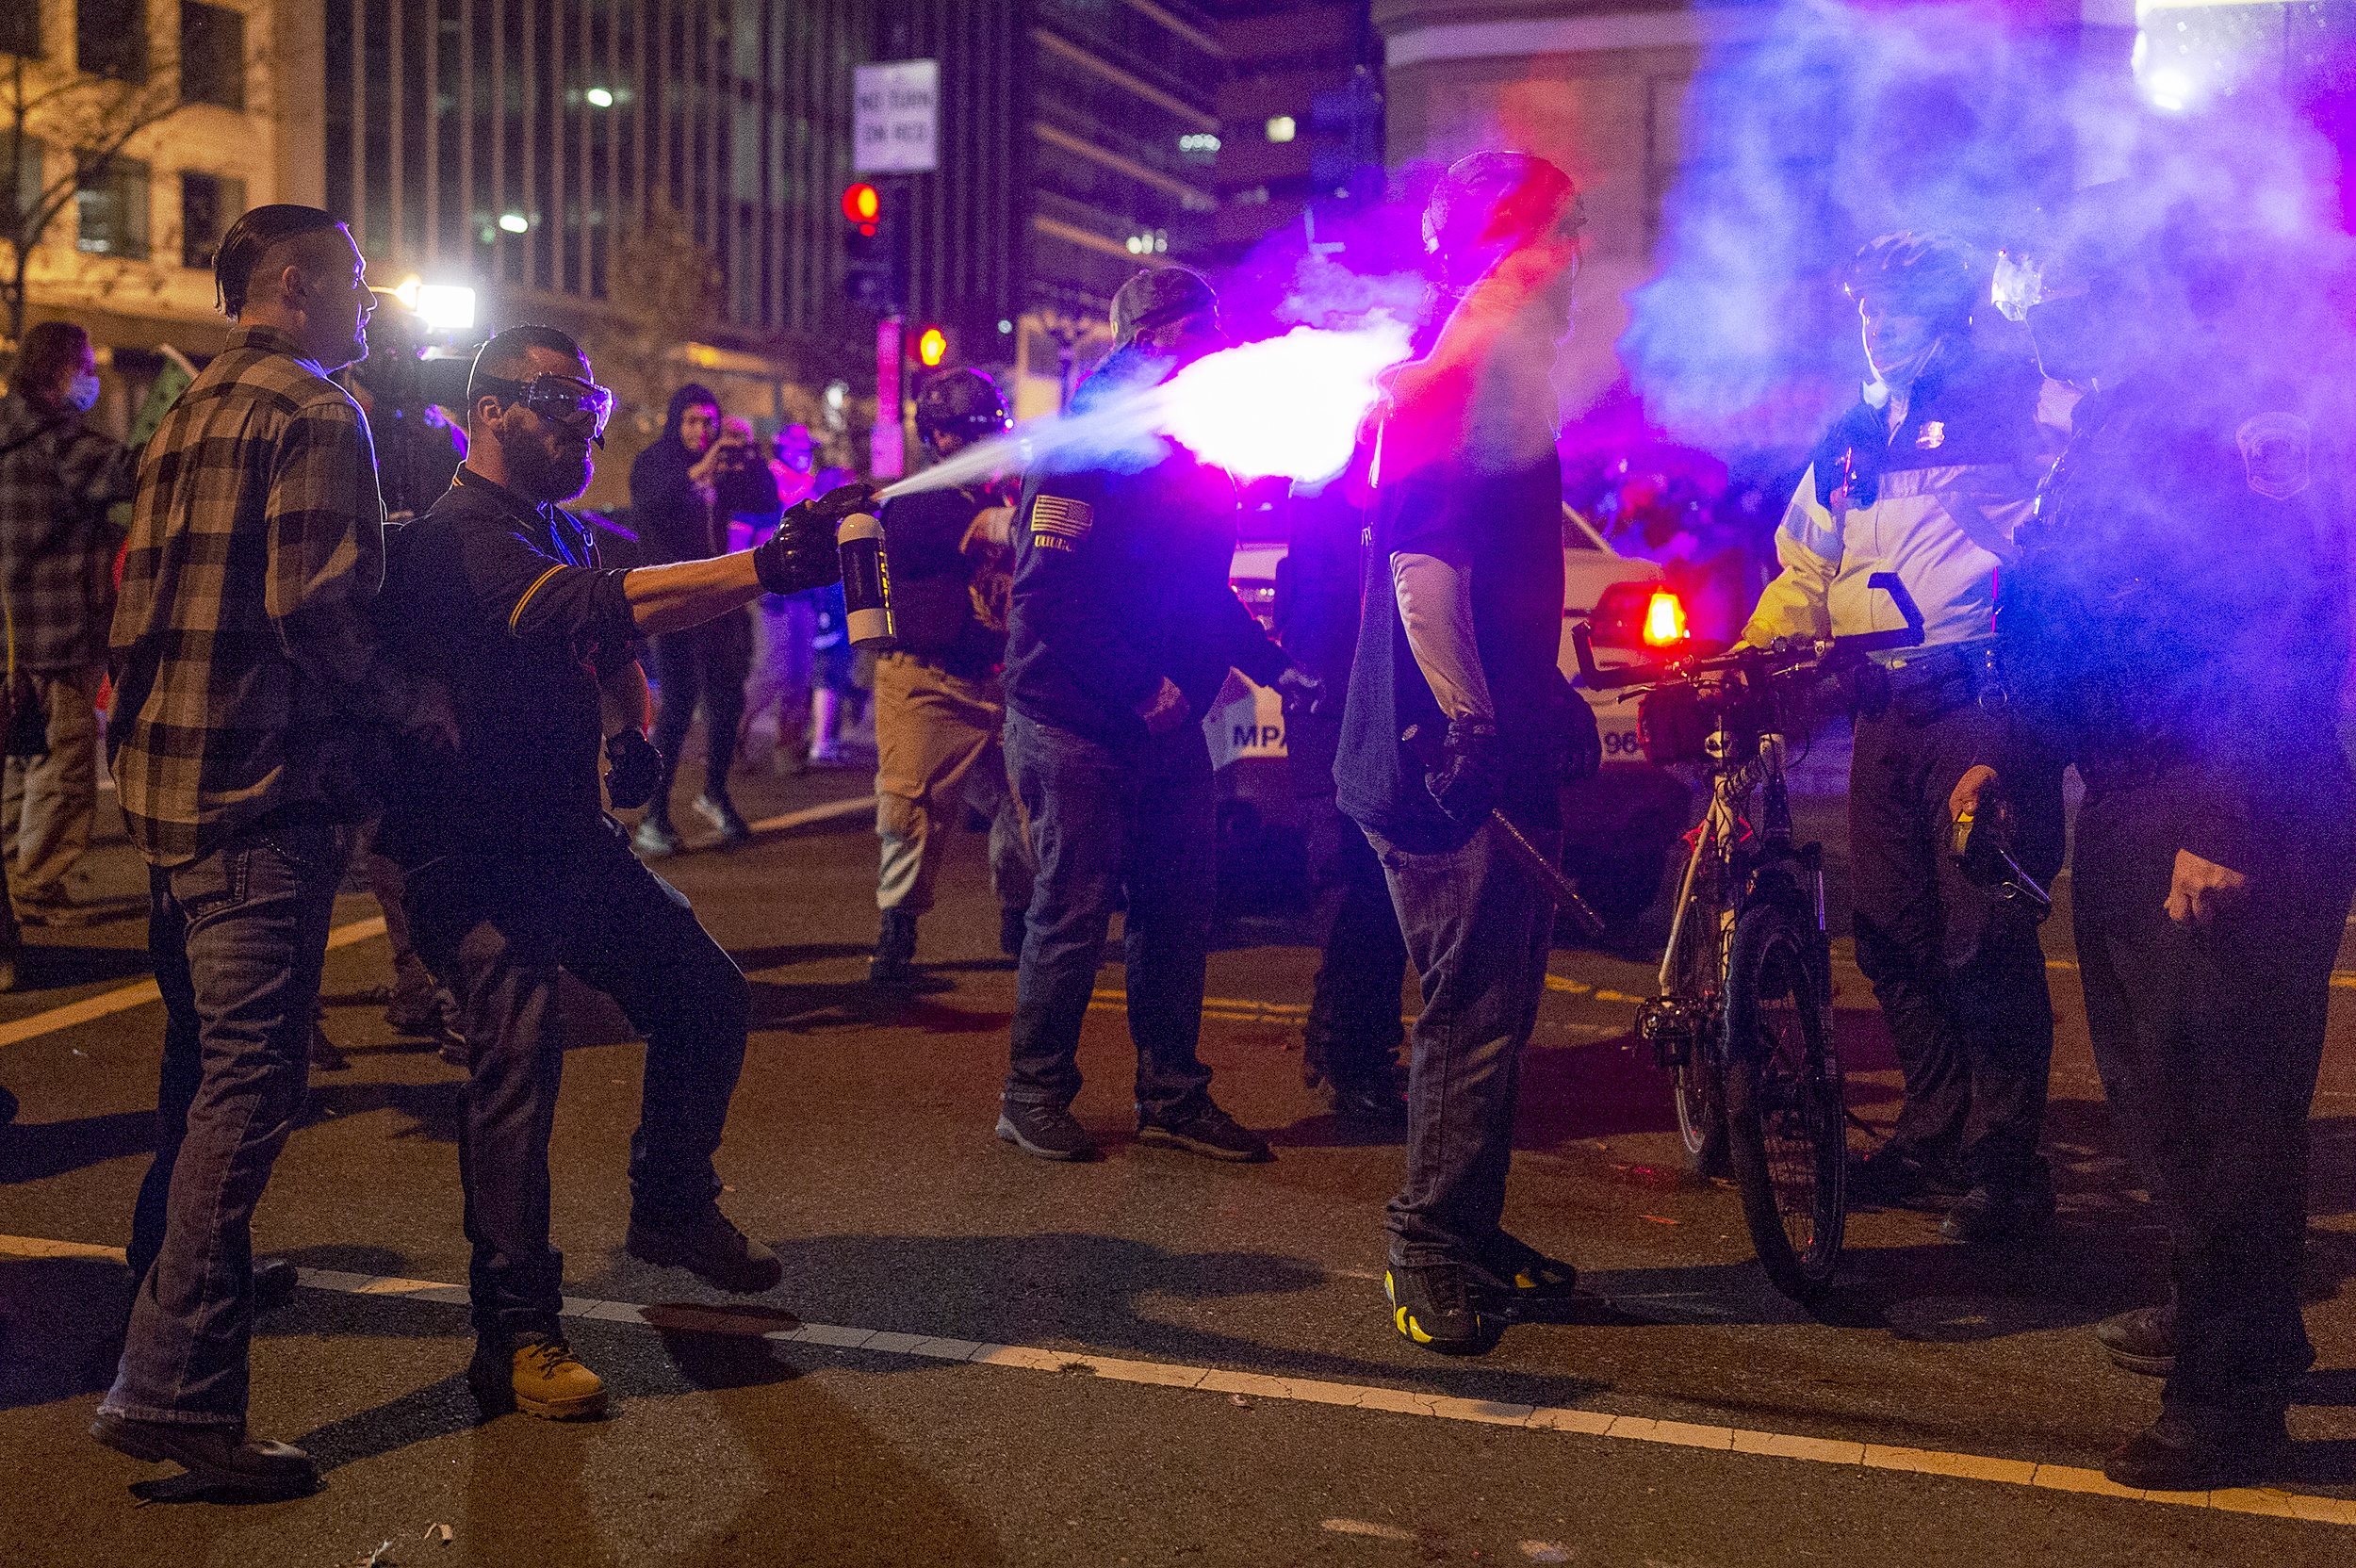 This could be the most volatile period for right-wing violence in recent memory